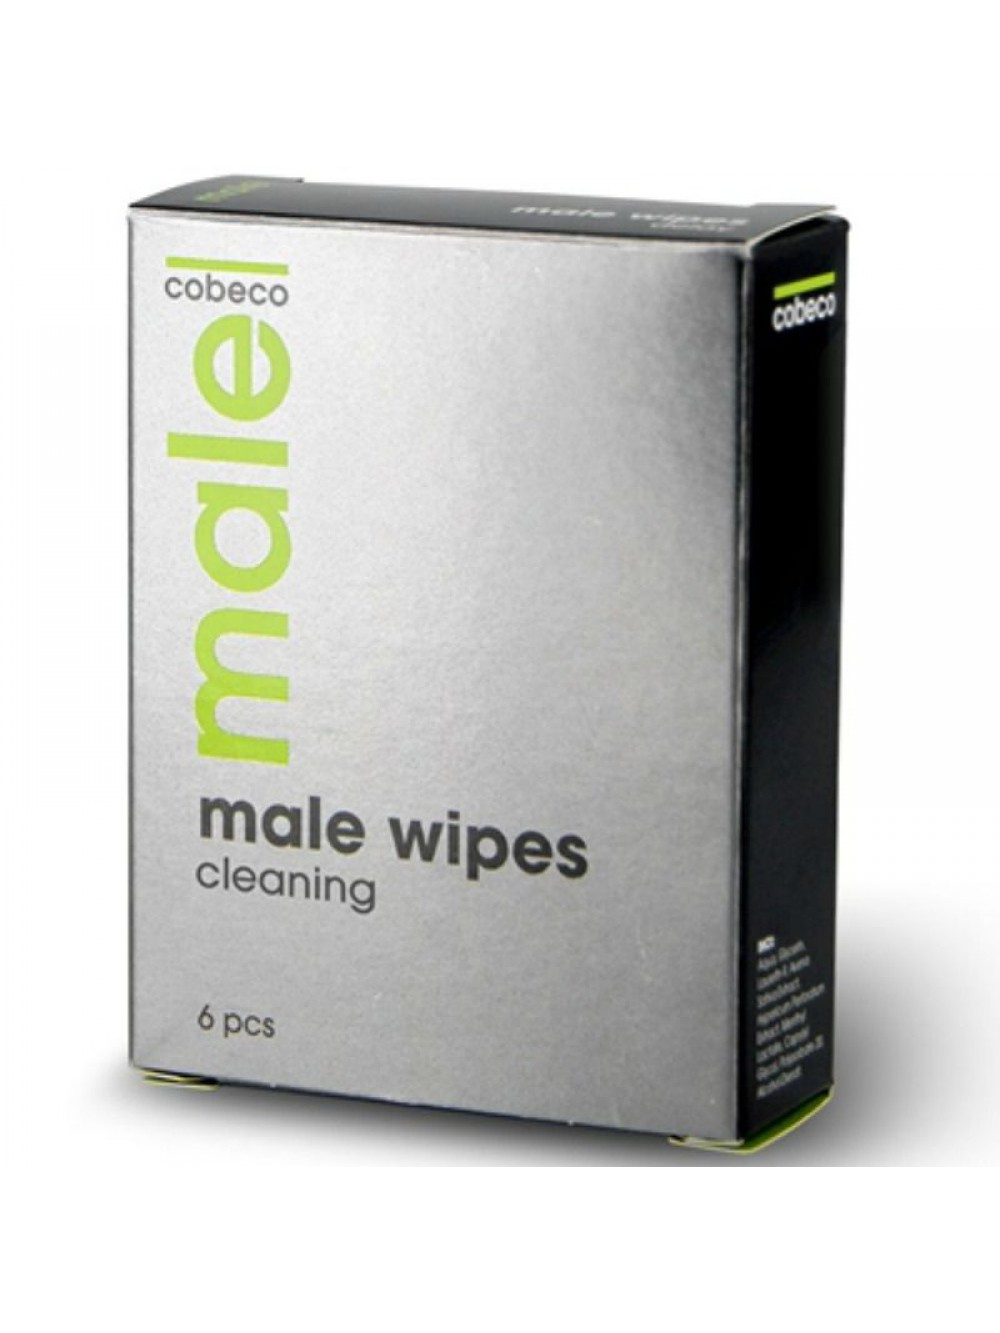 COBECO MALE WIPES CLEANING